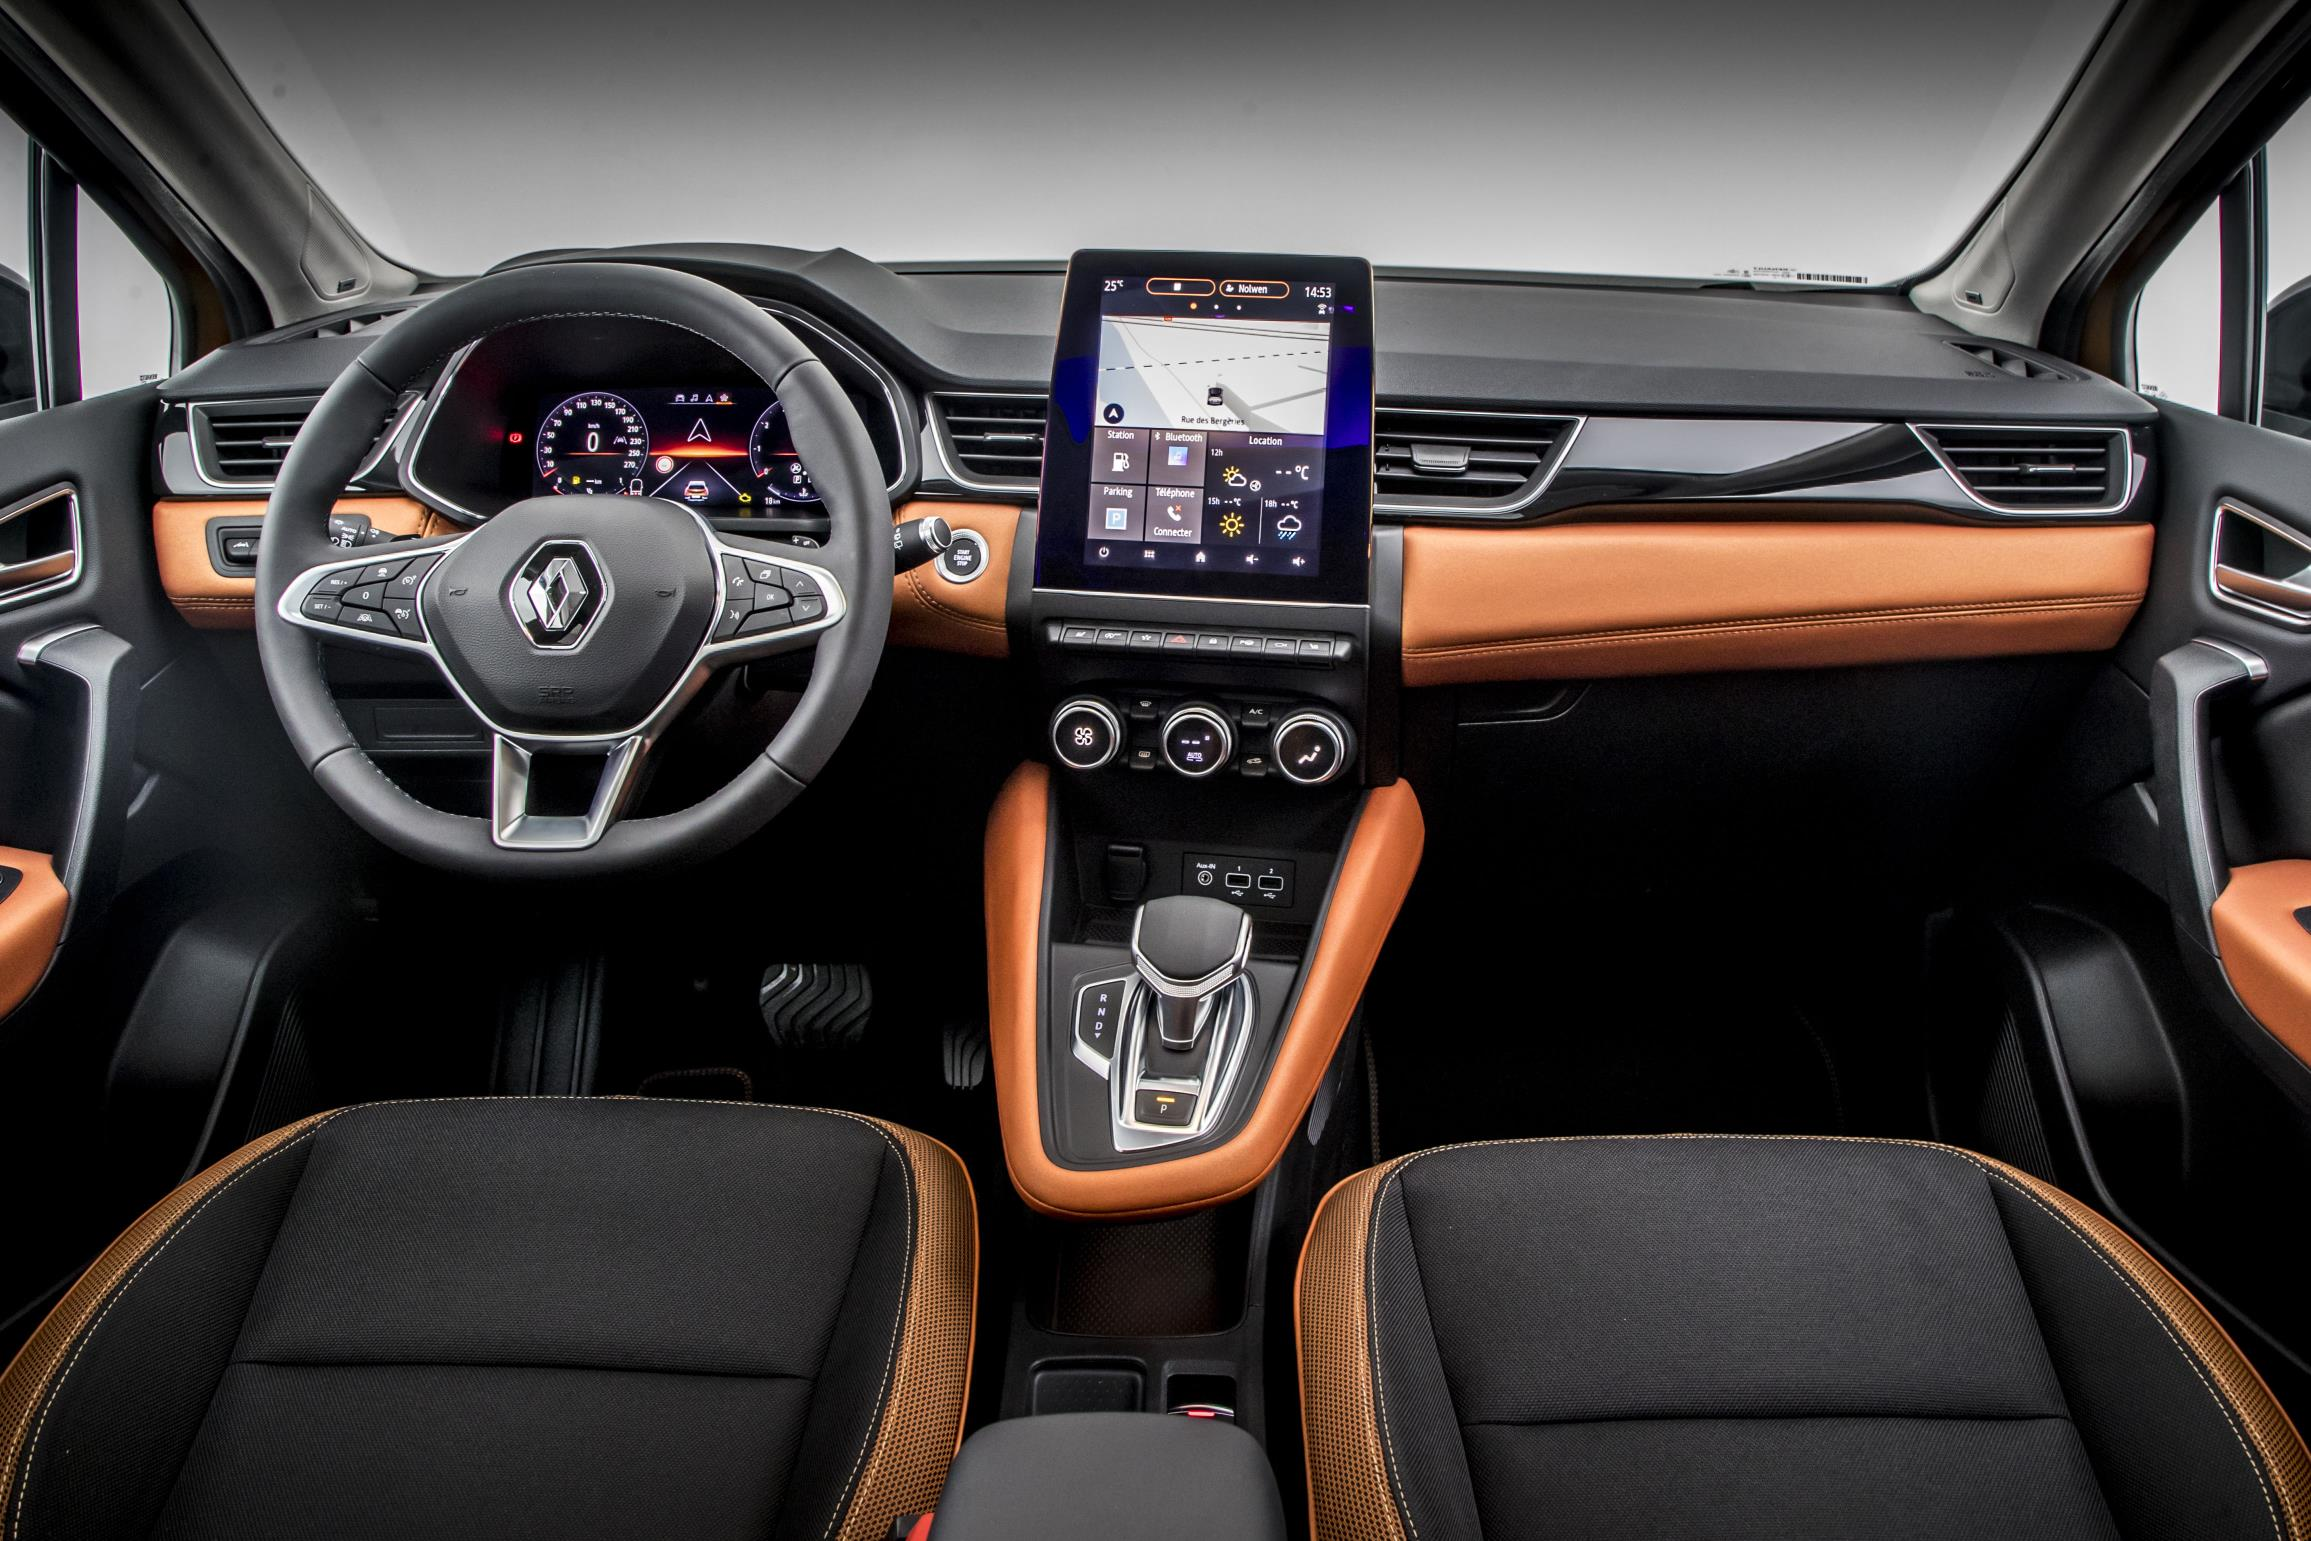 Top-spec cars get a portrait screen in the centre of the cabin